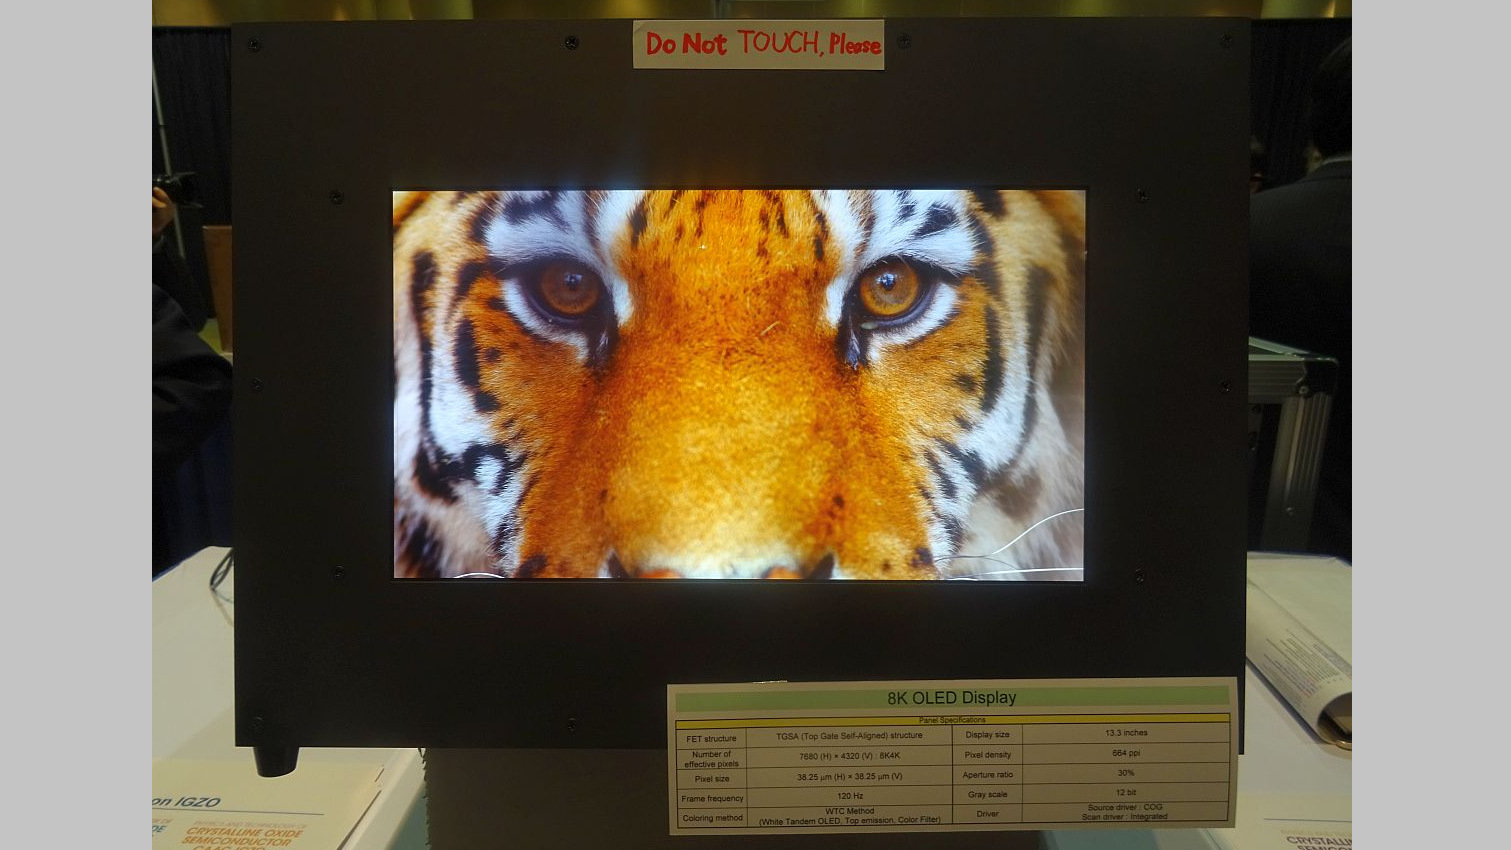 SEL - 13.3-inch 8k OLED display has a drive frequency of 120Hz and 12-bit colour scale